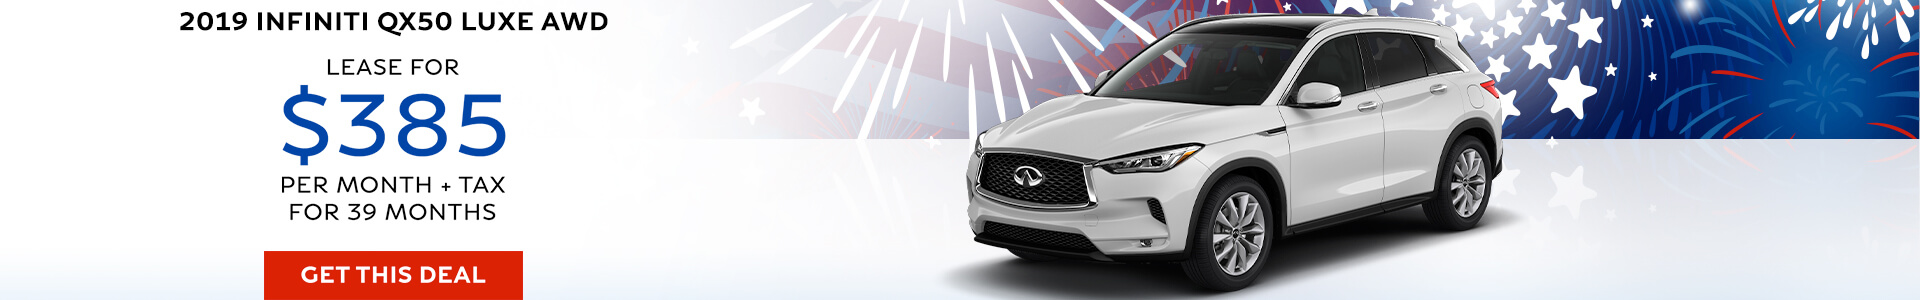 QX50 LUXE - Lease for $409